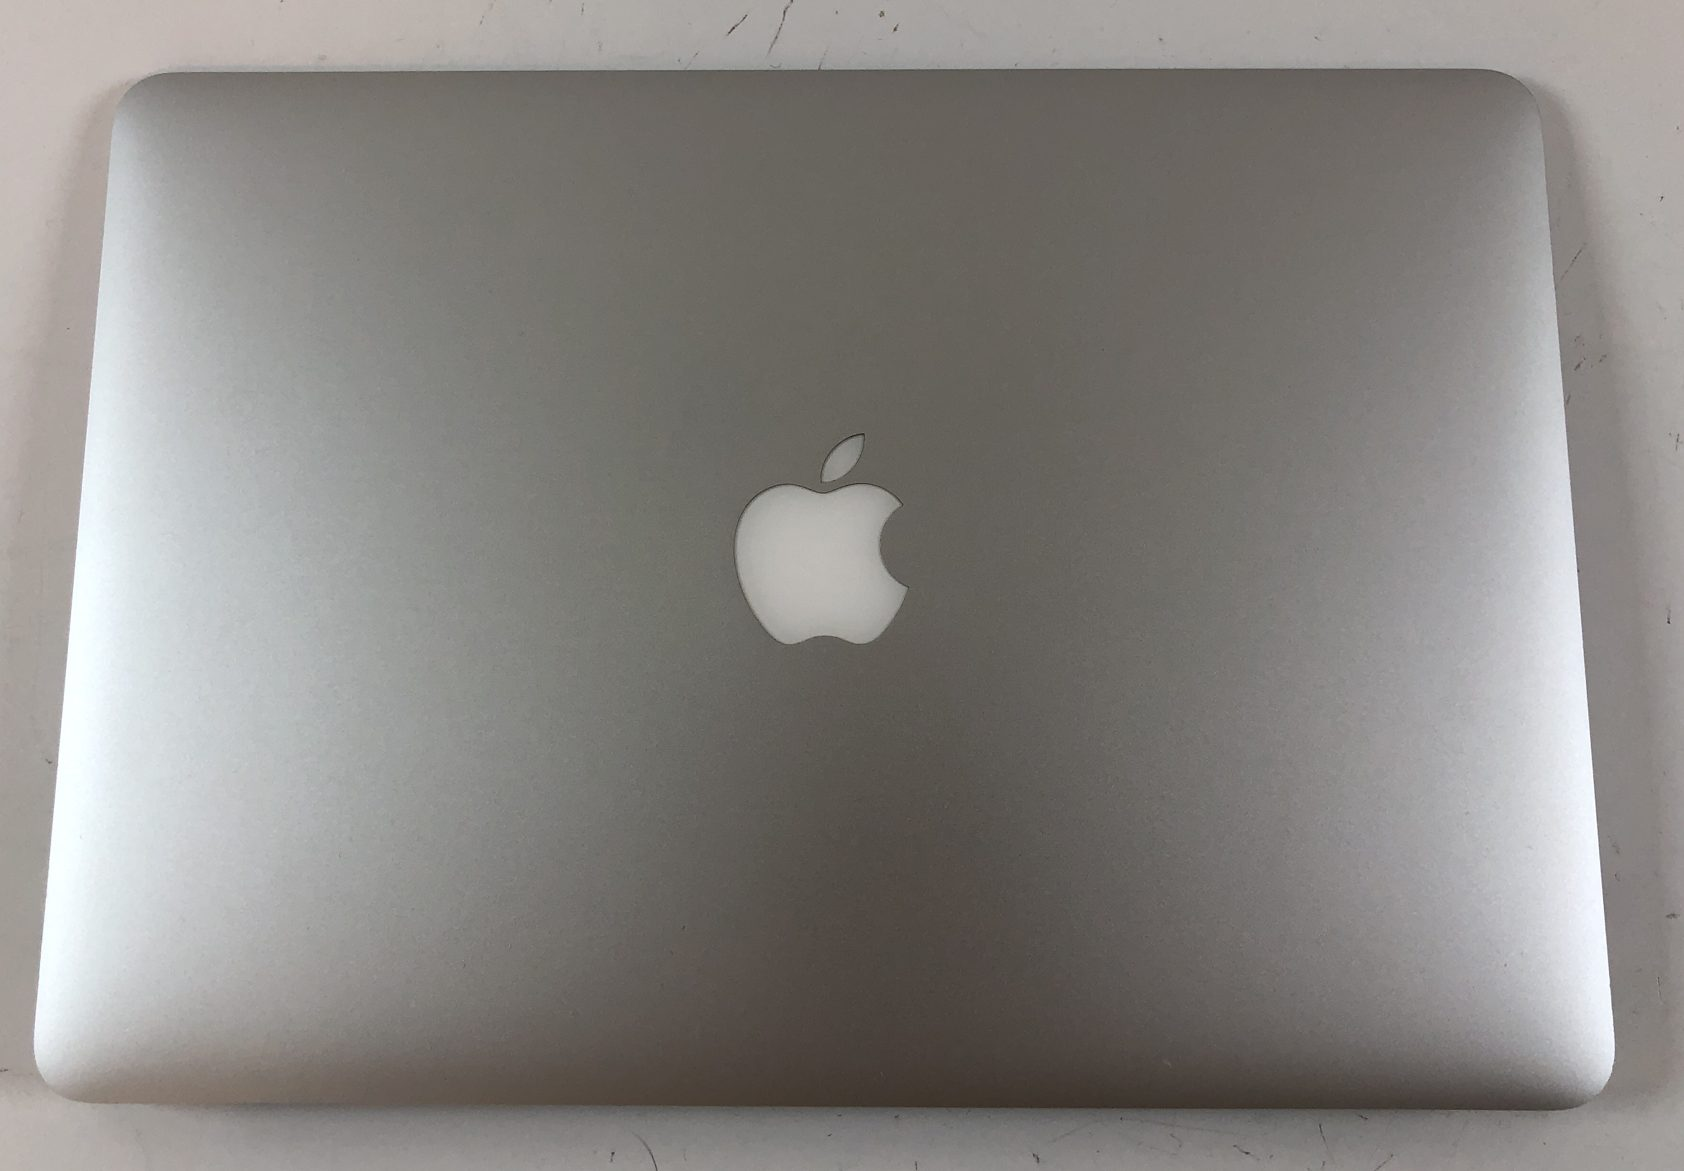 "MacBook Air 13"" Mid 2017 (Intel Core i5 1.8 GHz 8 GB RAM 128 GB SSD), Intel Core i5 1.8 GHz, 8 GB RAM, 128 GB SSD, bild 2"